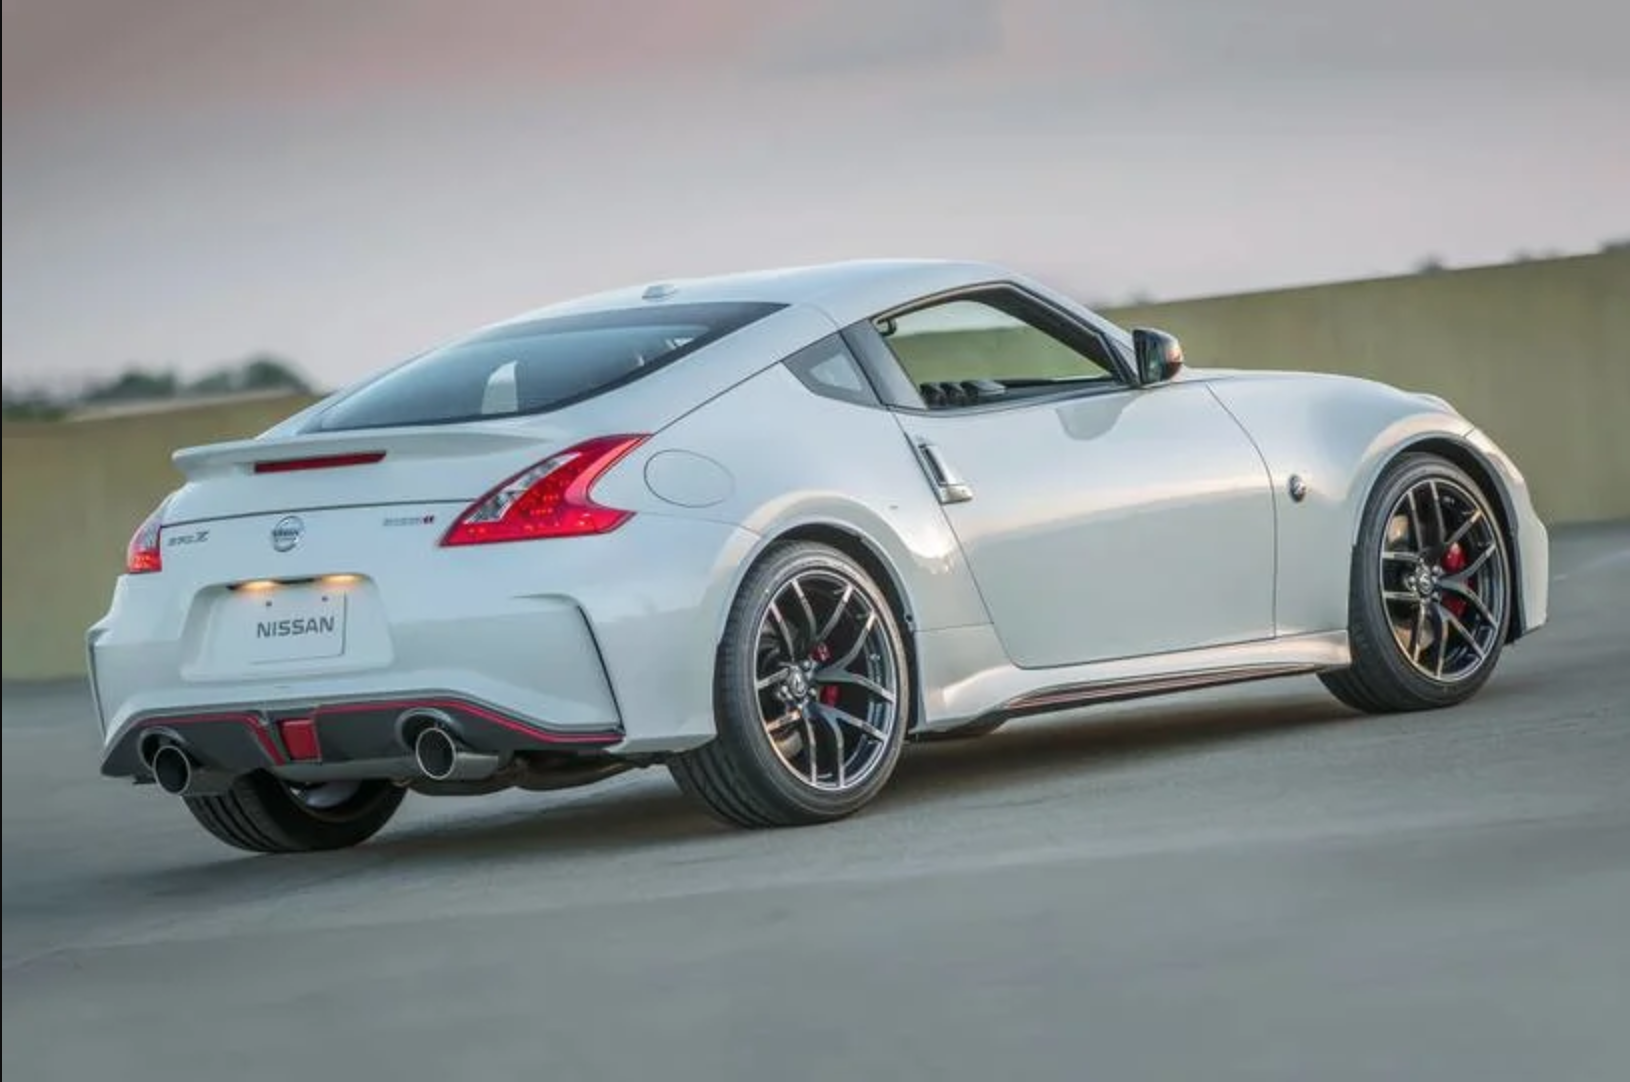 2019 370Z Coupe in North Carolina